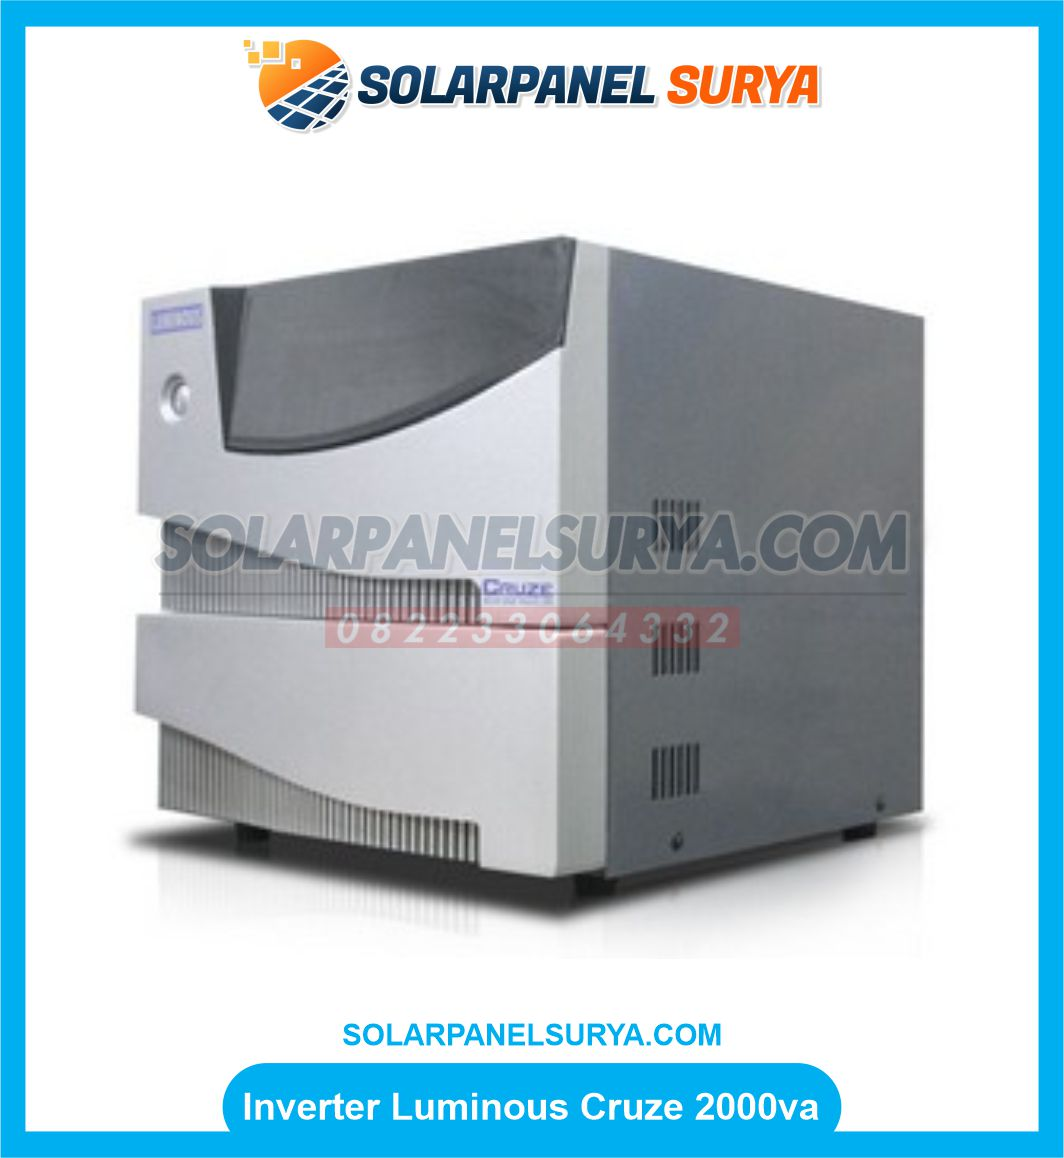 harga inverter luminous single phase 2kva pure sine wave